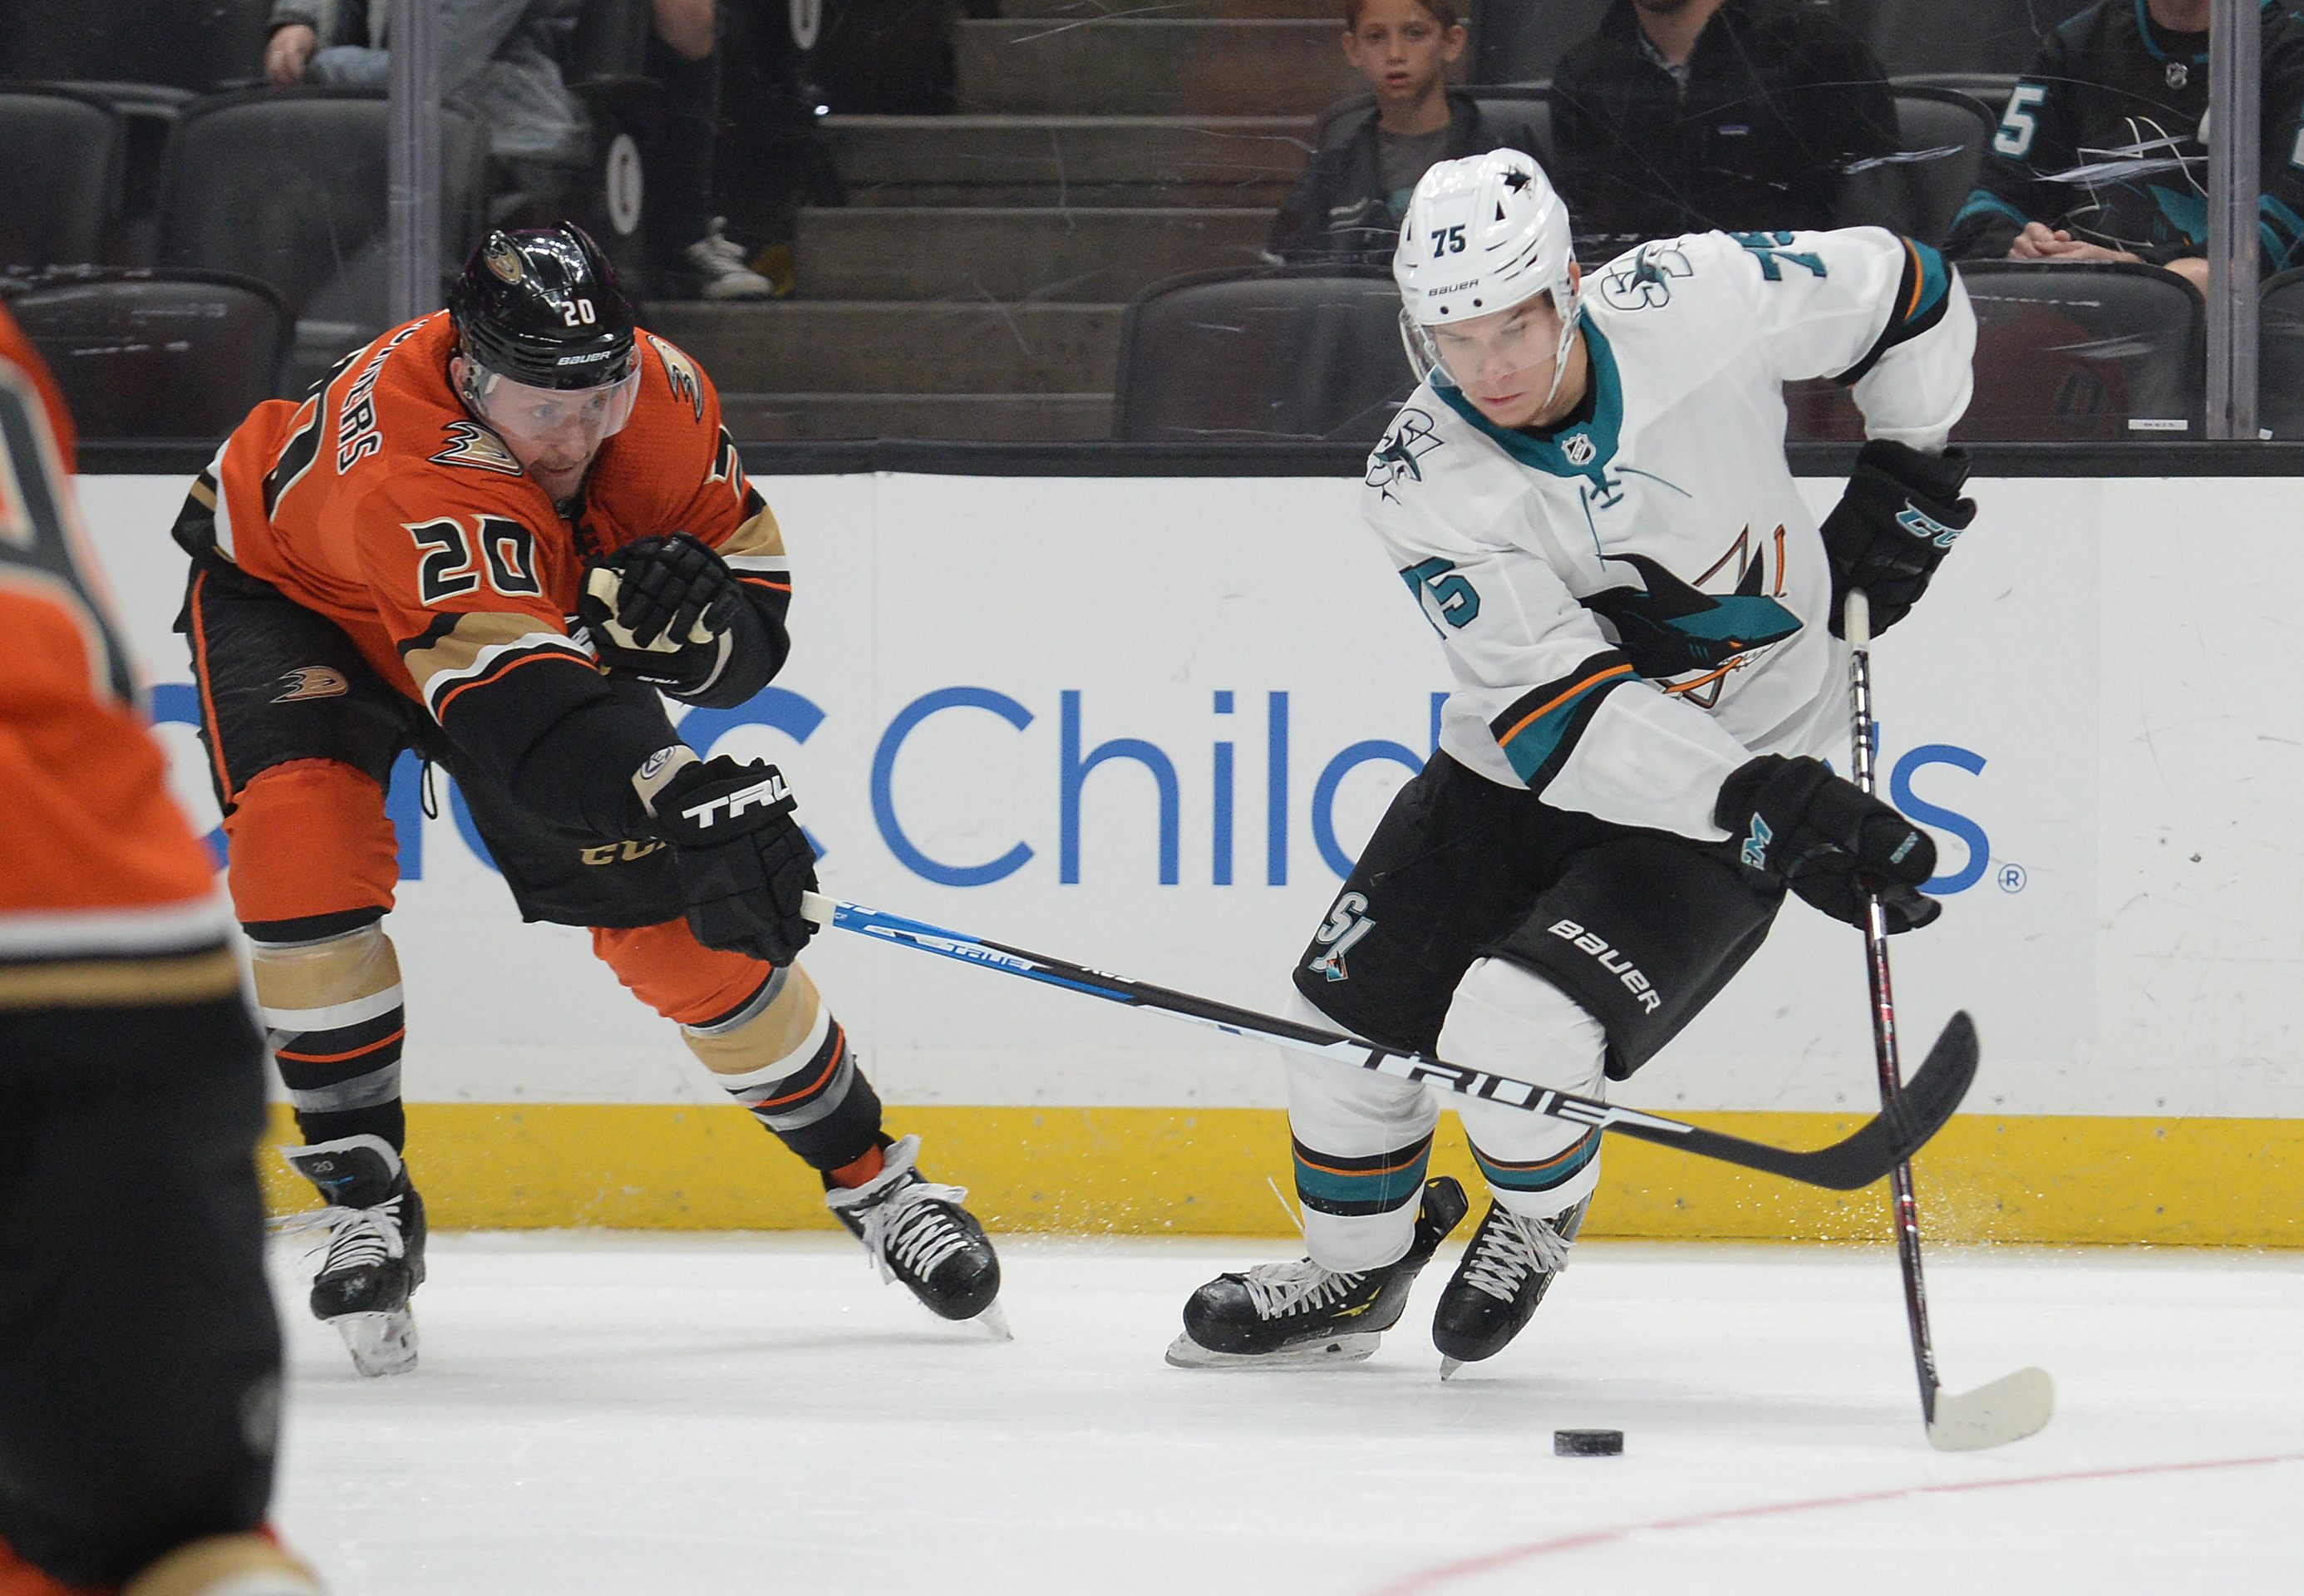 October 5, 2019; Anaheim, CA, USA; San Jose Sharks left wing Danil Yurtaykin (75) moves the puck against Anaheim Ducks left wing Nicolas Deslauriers (20) during the first period at Honda Center.